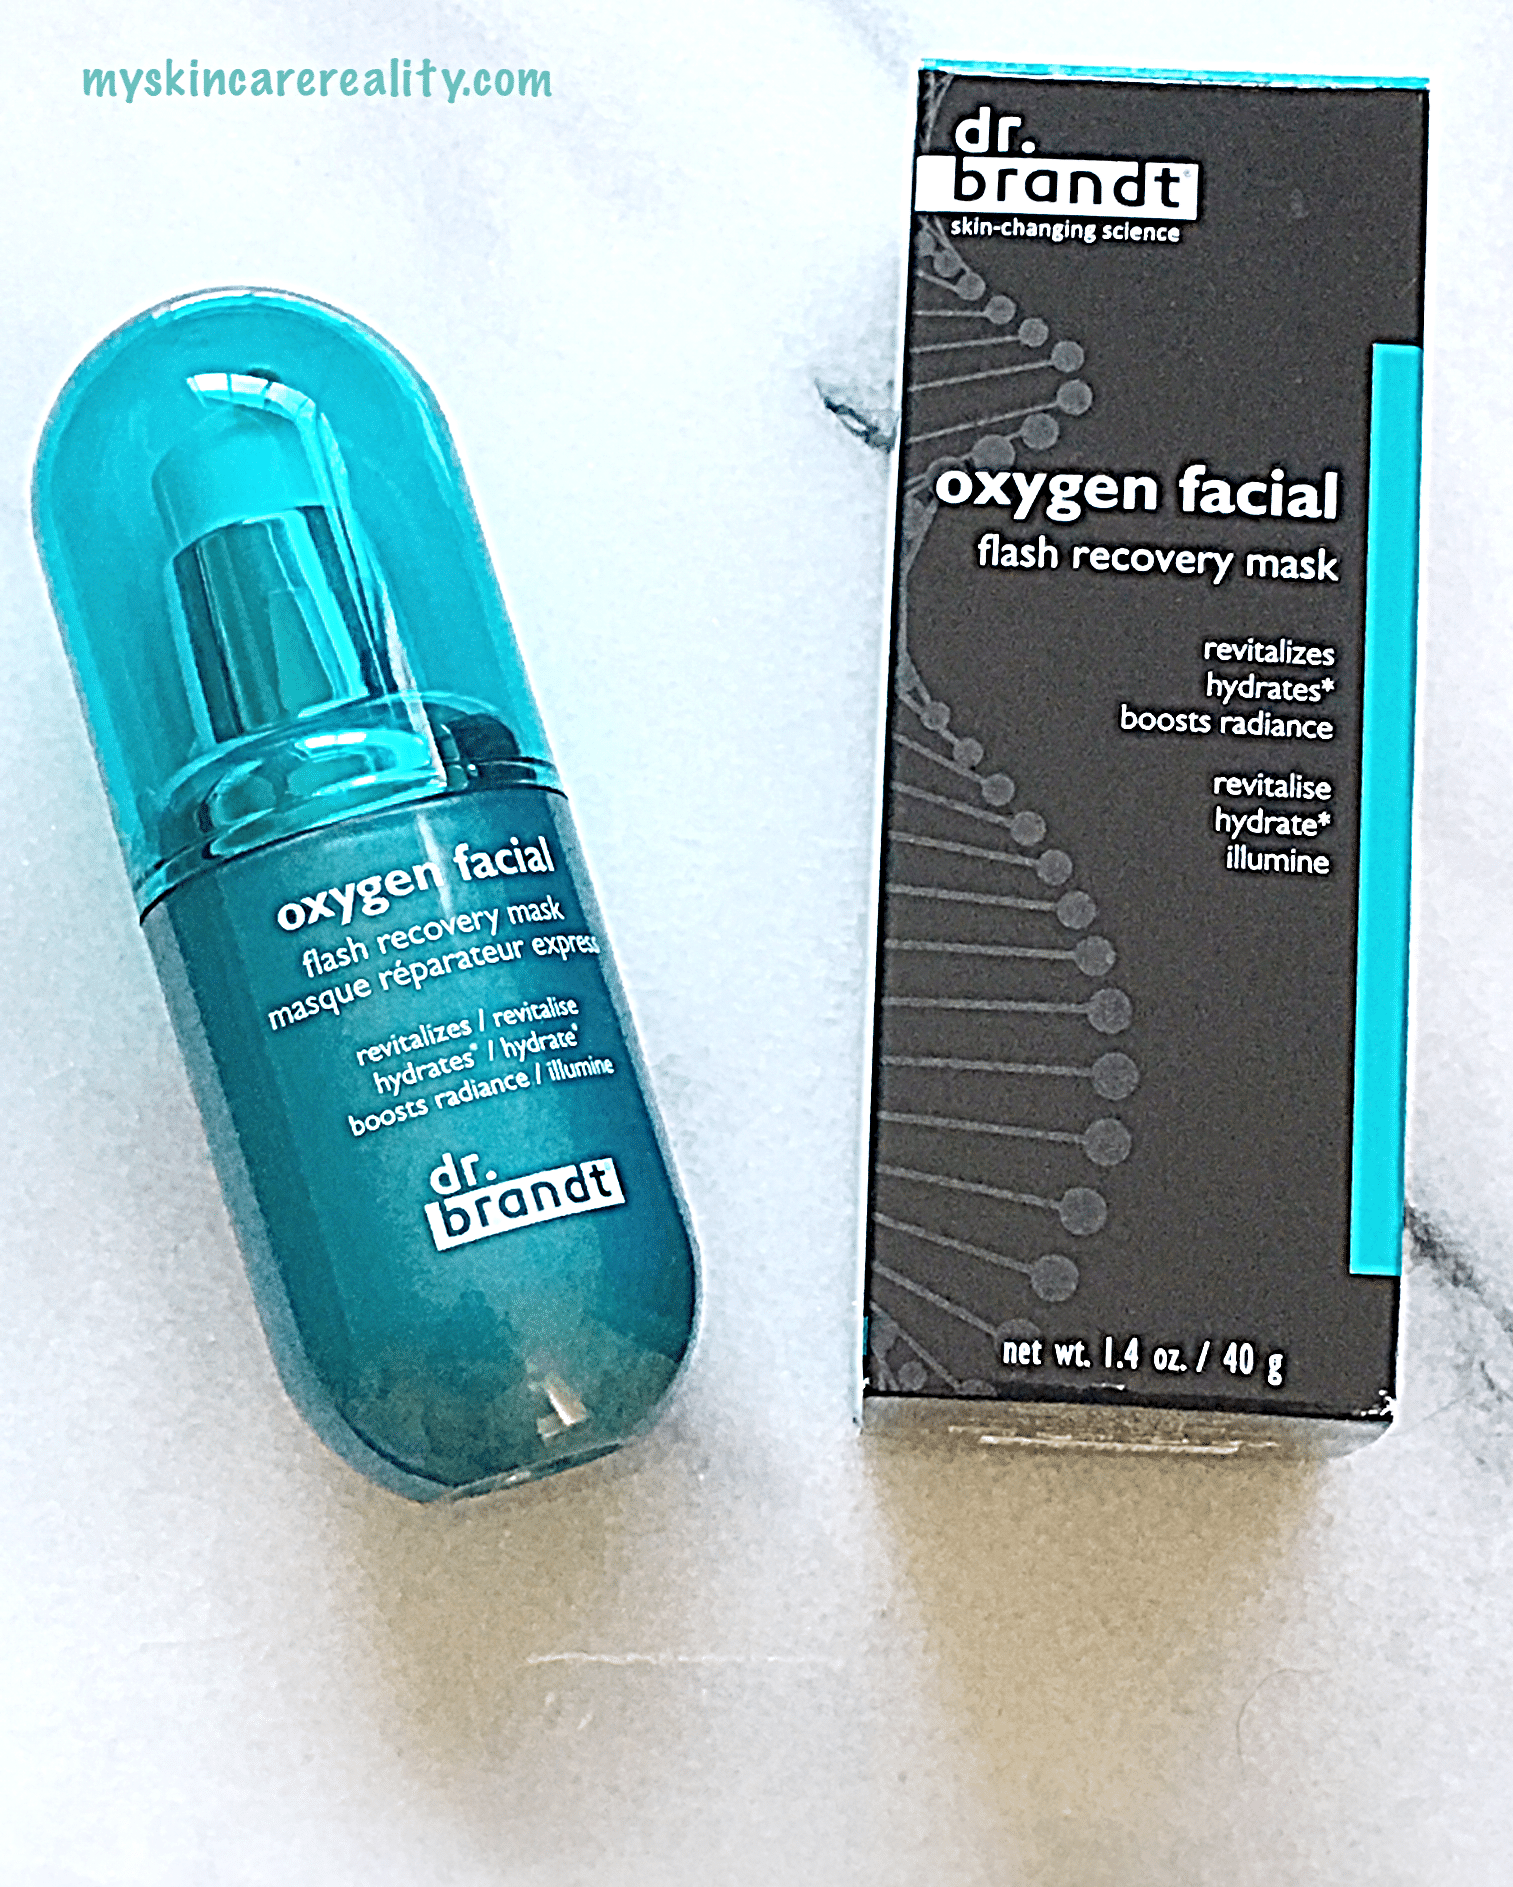 Dr Brandt Oxygen Facial Flash Recovery Mask Review